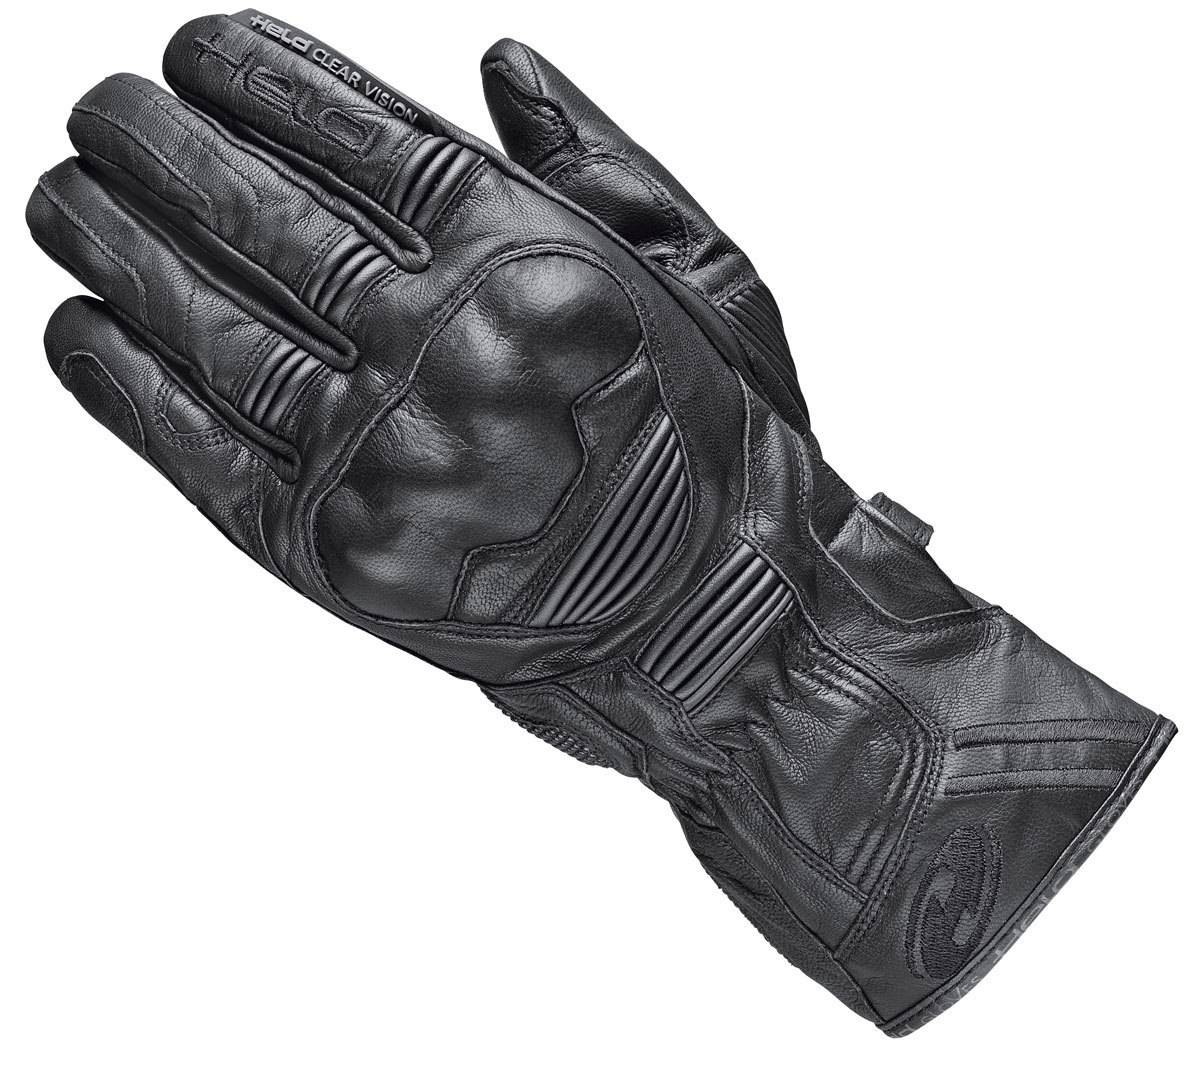 Held Touch Guantes Negro L-8